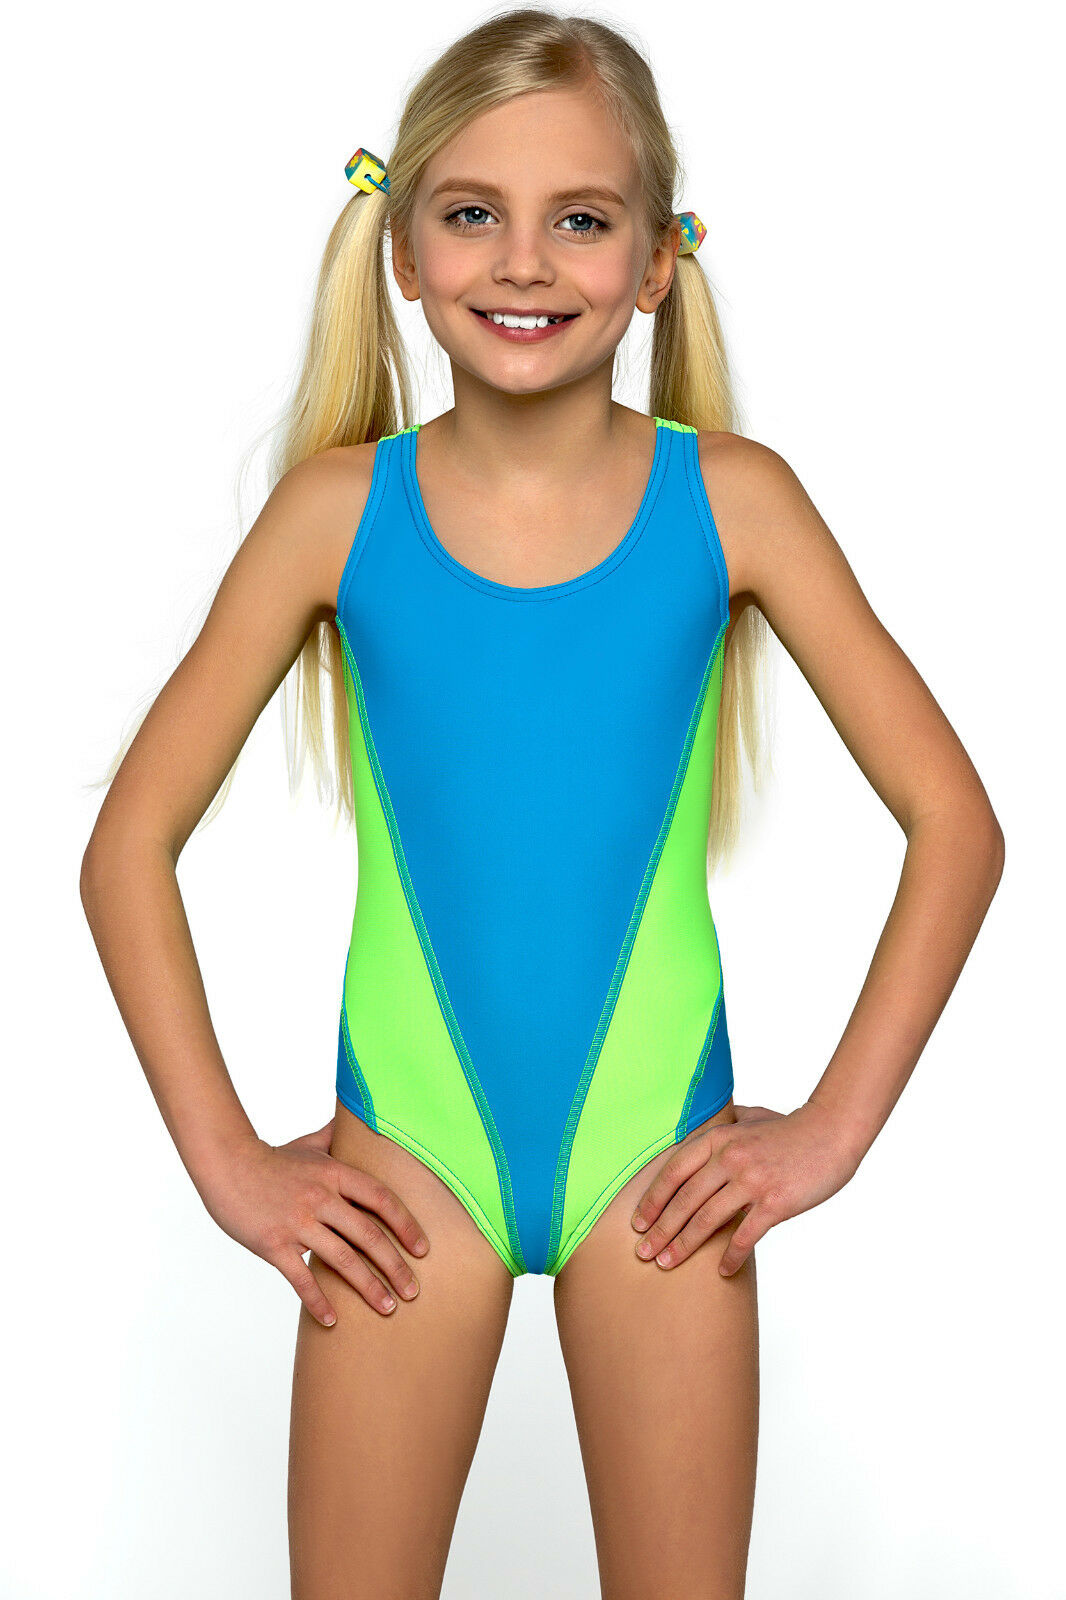 d710c08de7e New One Piece Girls Sport Swimming Costume Swimwear Swimsuit Age 8 9 10 11  12 13 Sc 1 St EBay